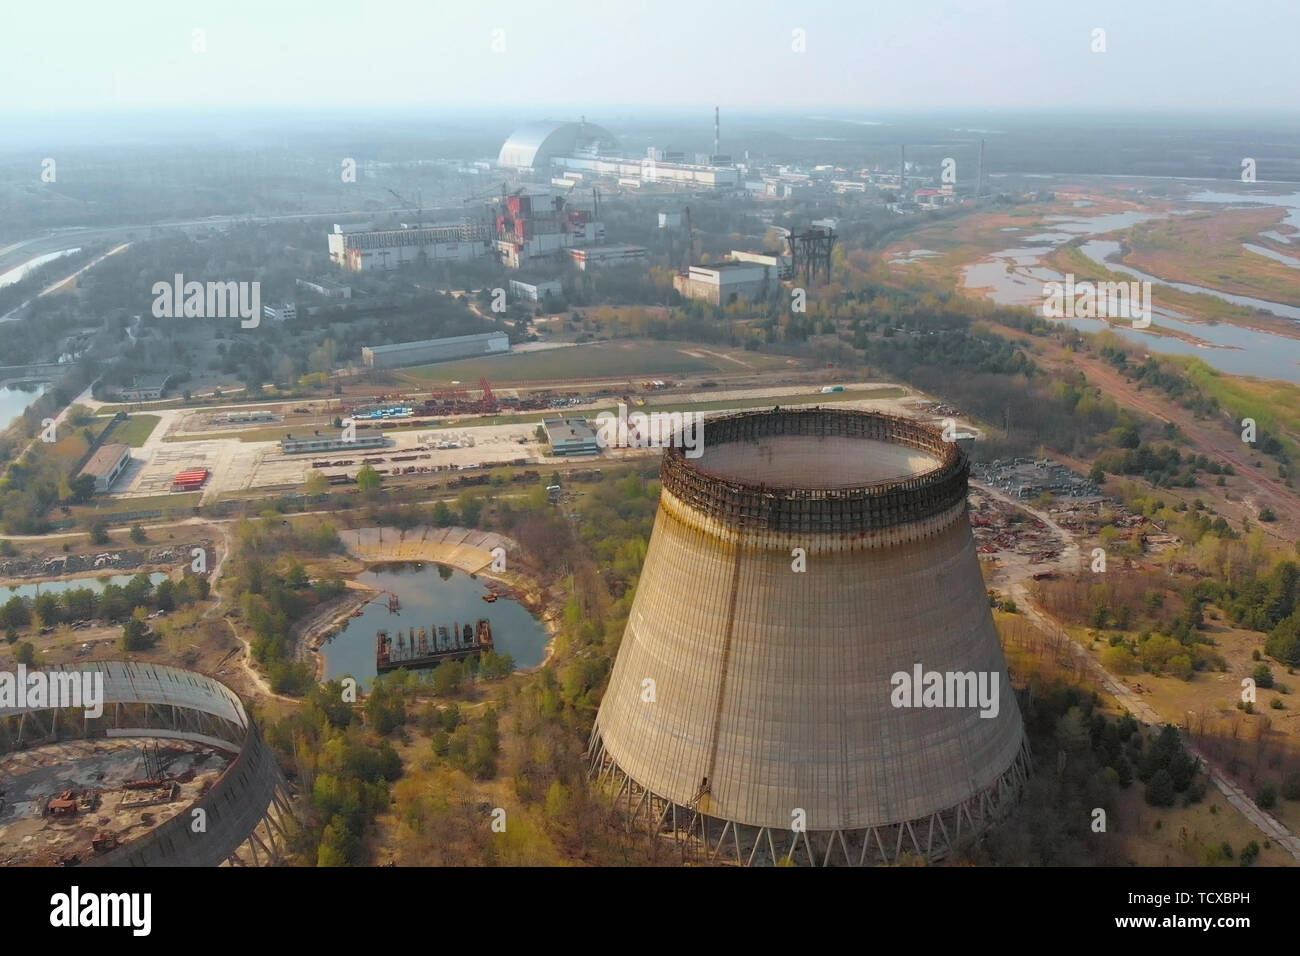 Chernobyl nuclear power plant, Ukrine. Aerial view - Stock Image